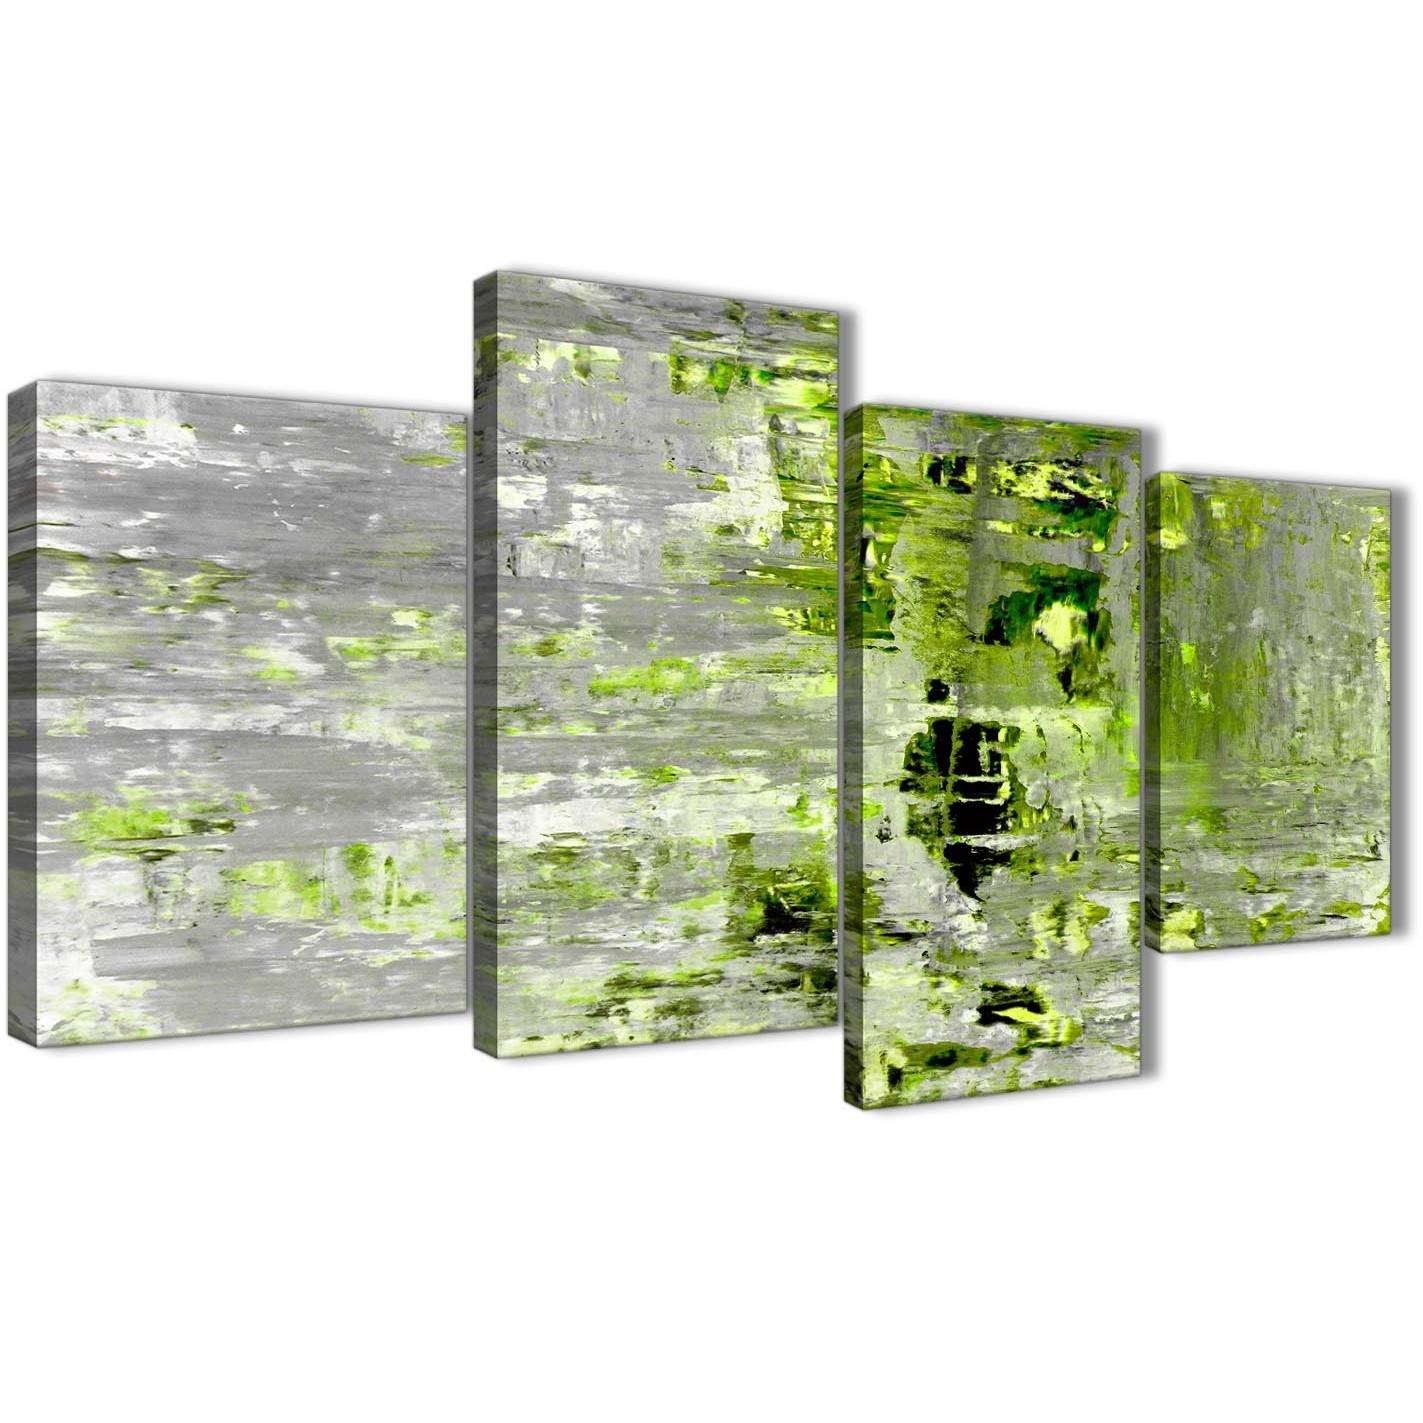 Large Lime Green Grey Abstract Painting Wall Art Print Canvas Throughout Most Up To Date Lime Green Abstract Wall Art (View 10 of 20)